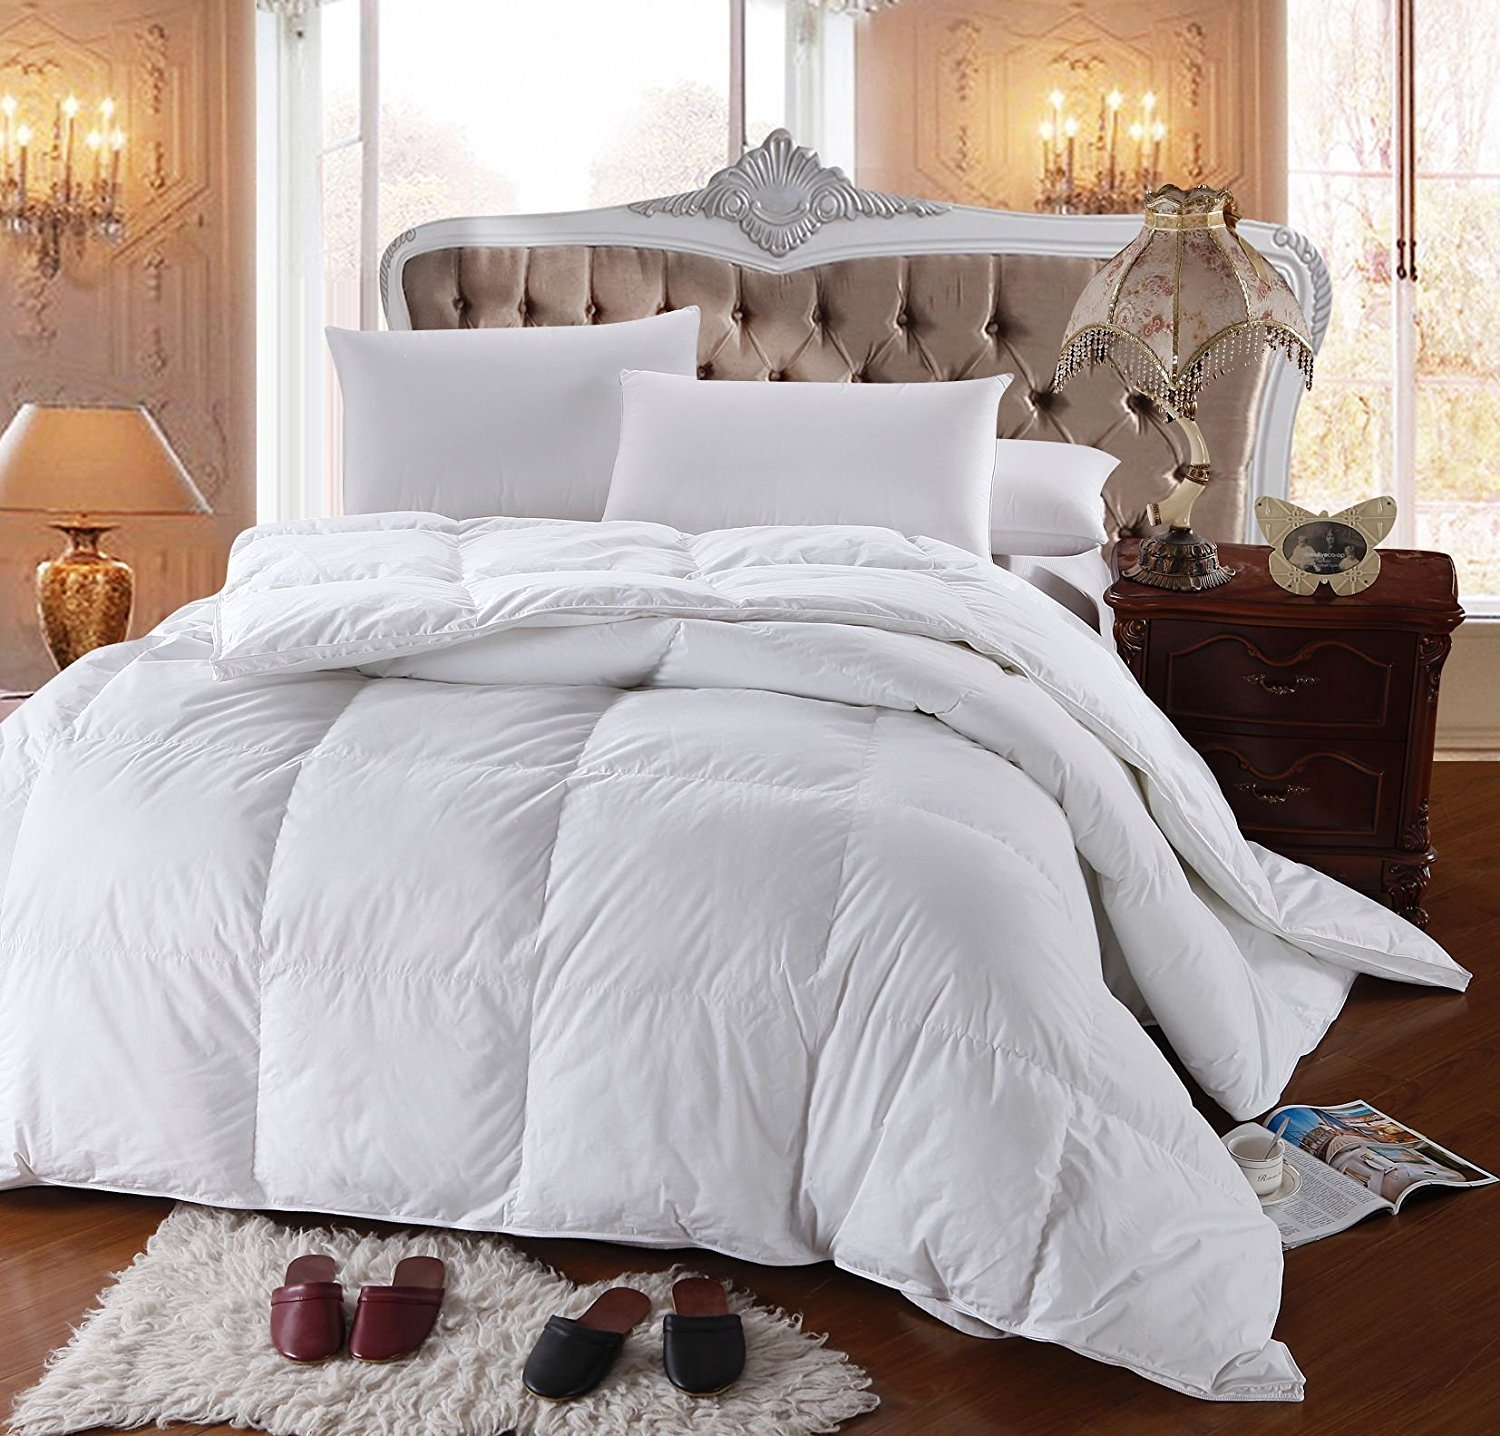 ikea oversized large xl duvet urban king cover bedding down frame alluring sightly fill light luxury weight lovely warmth outfitters bed covers metal bsg goose at fantastic power winter canada comforter extra twin